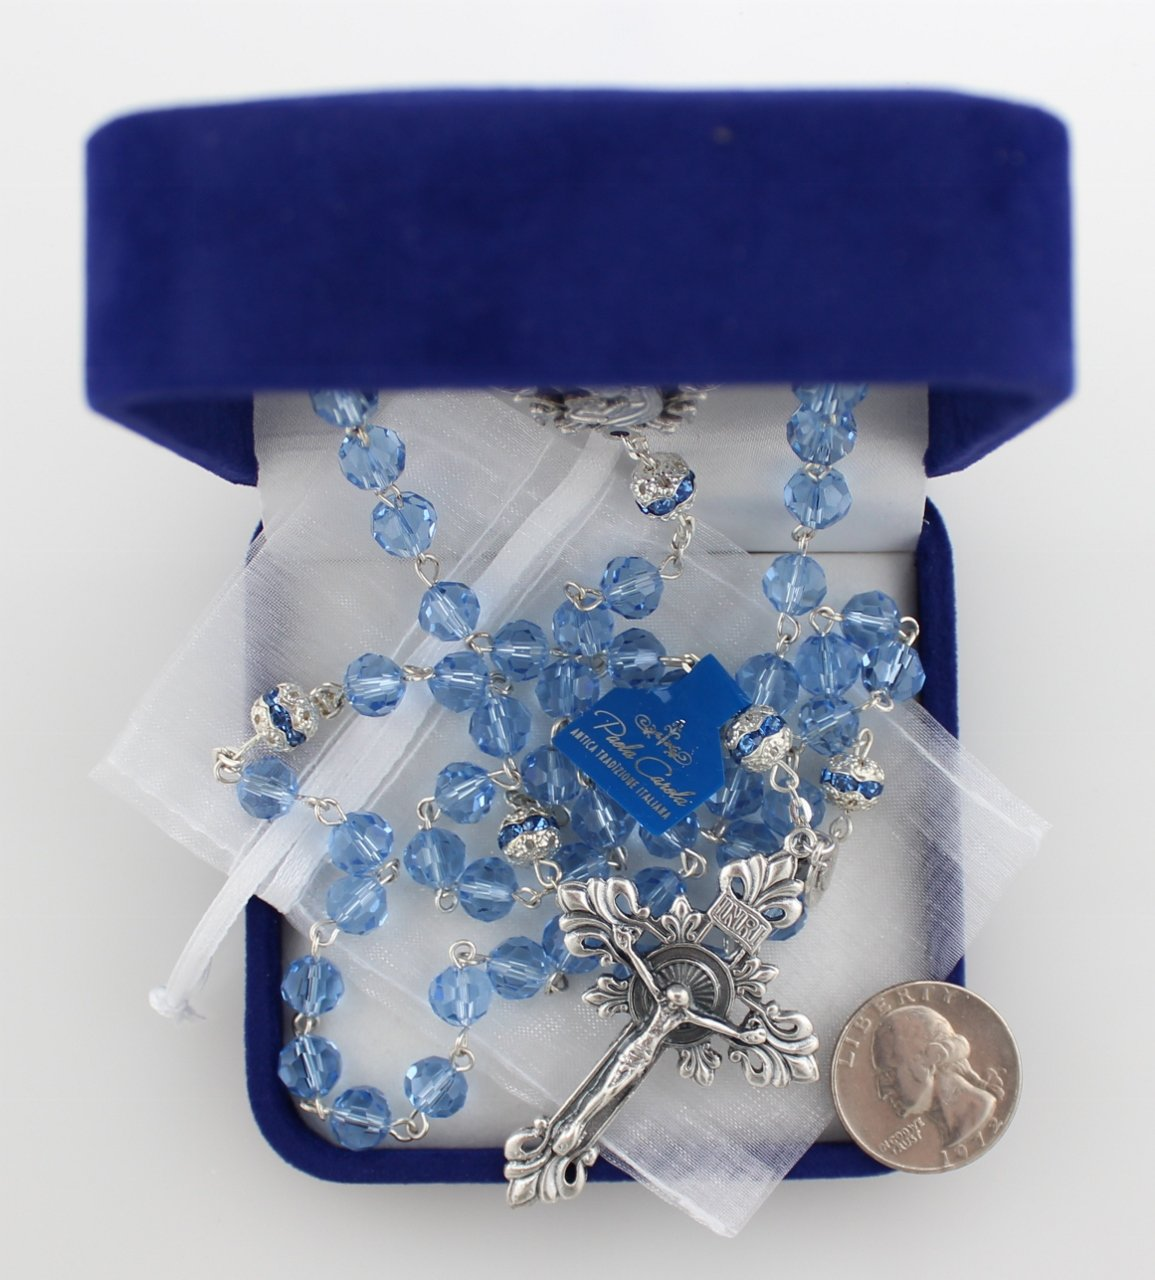 8mm Diamond-Cut Sapphire Crystal Bead Rosary designed by Paola Carola with Miraculous Medal dangle and White Organza Bag in Deluxe Rosary Gift Box